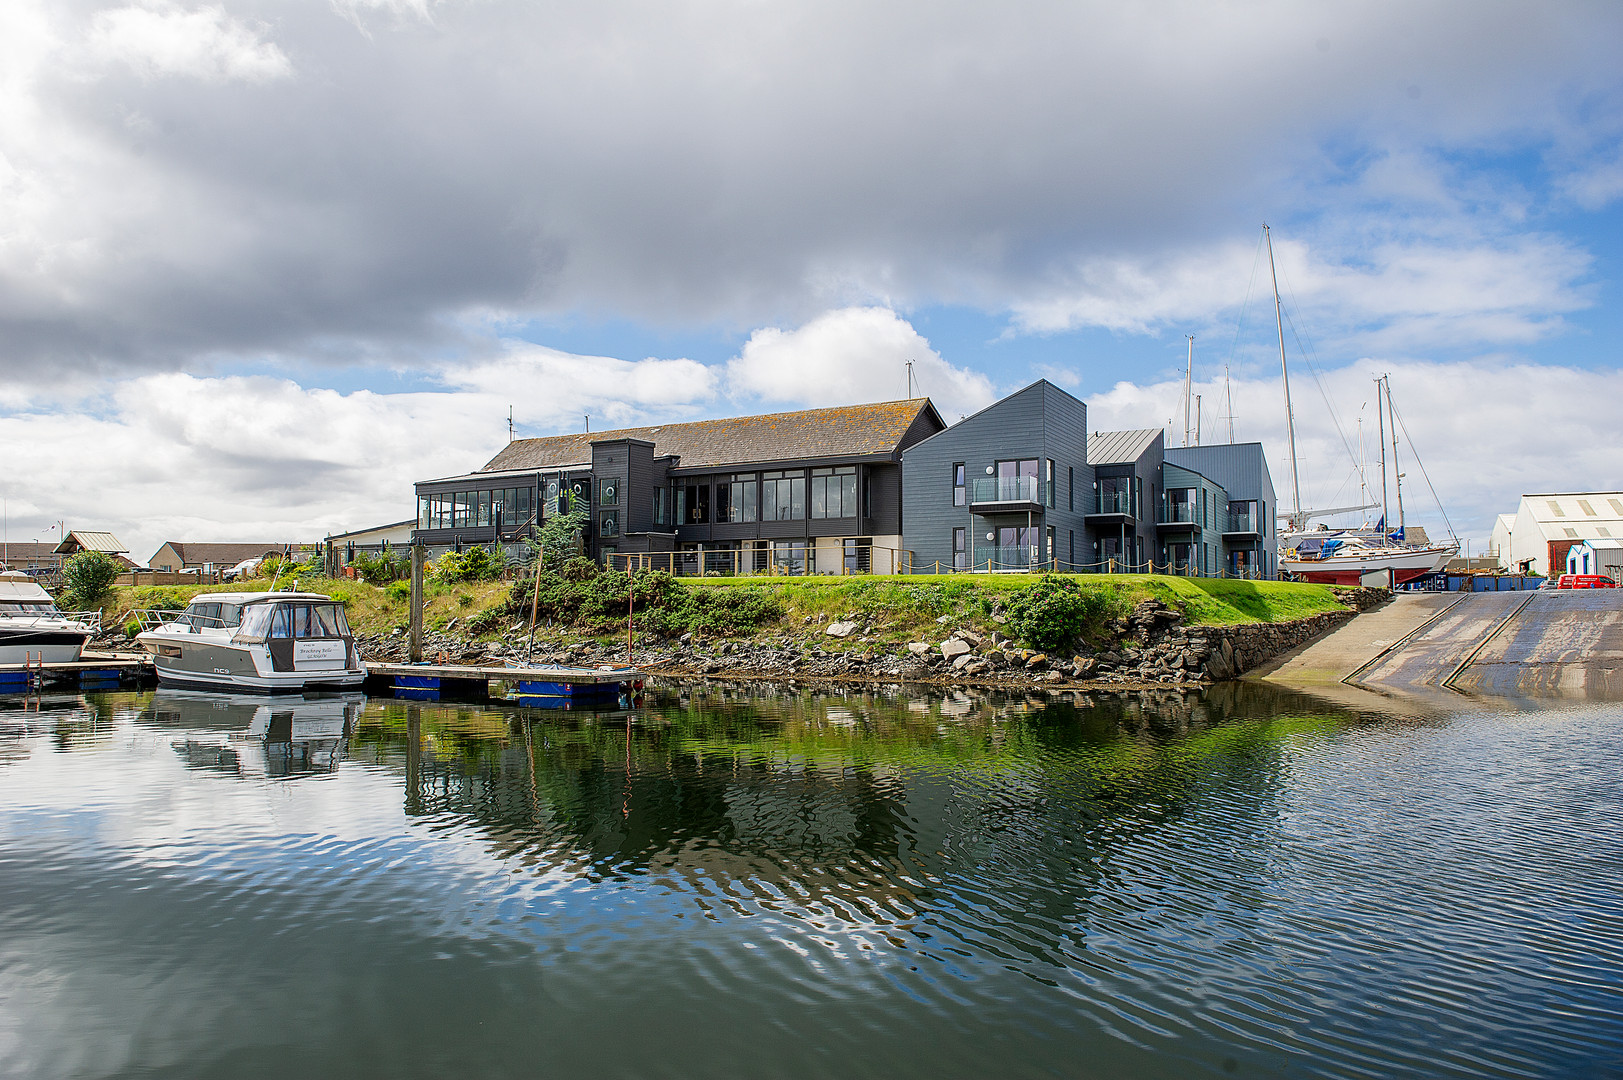 Salt Lodge at Troon Yacht Haven